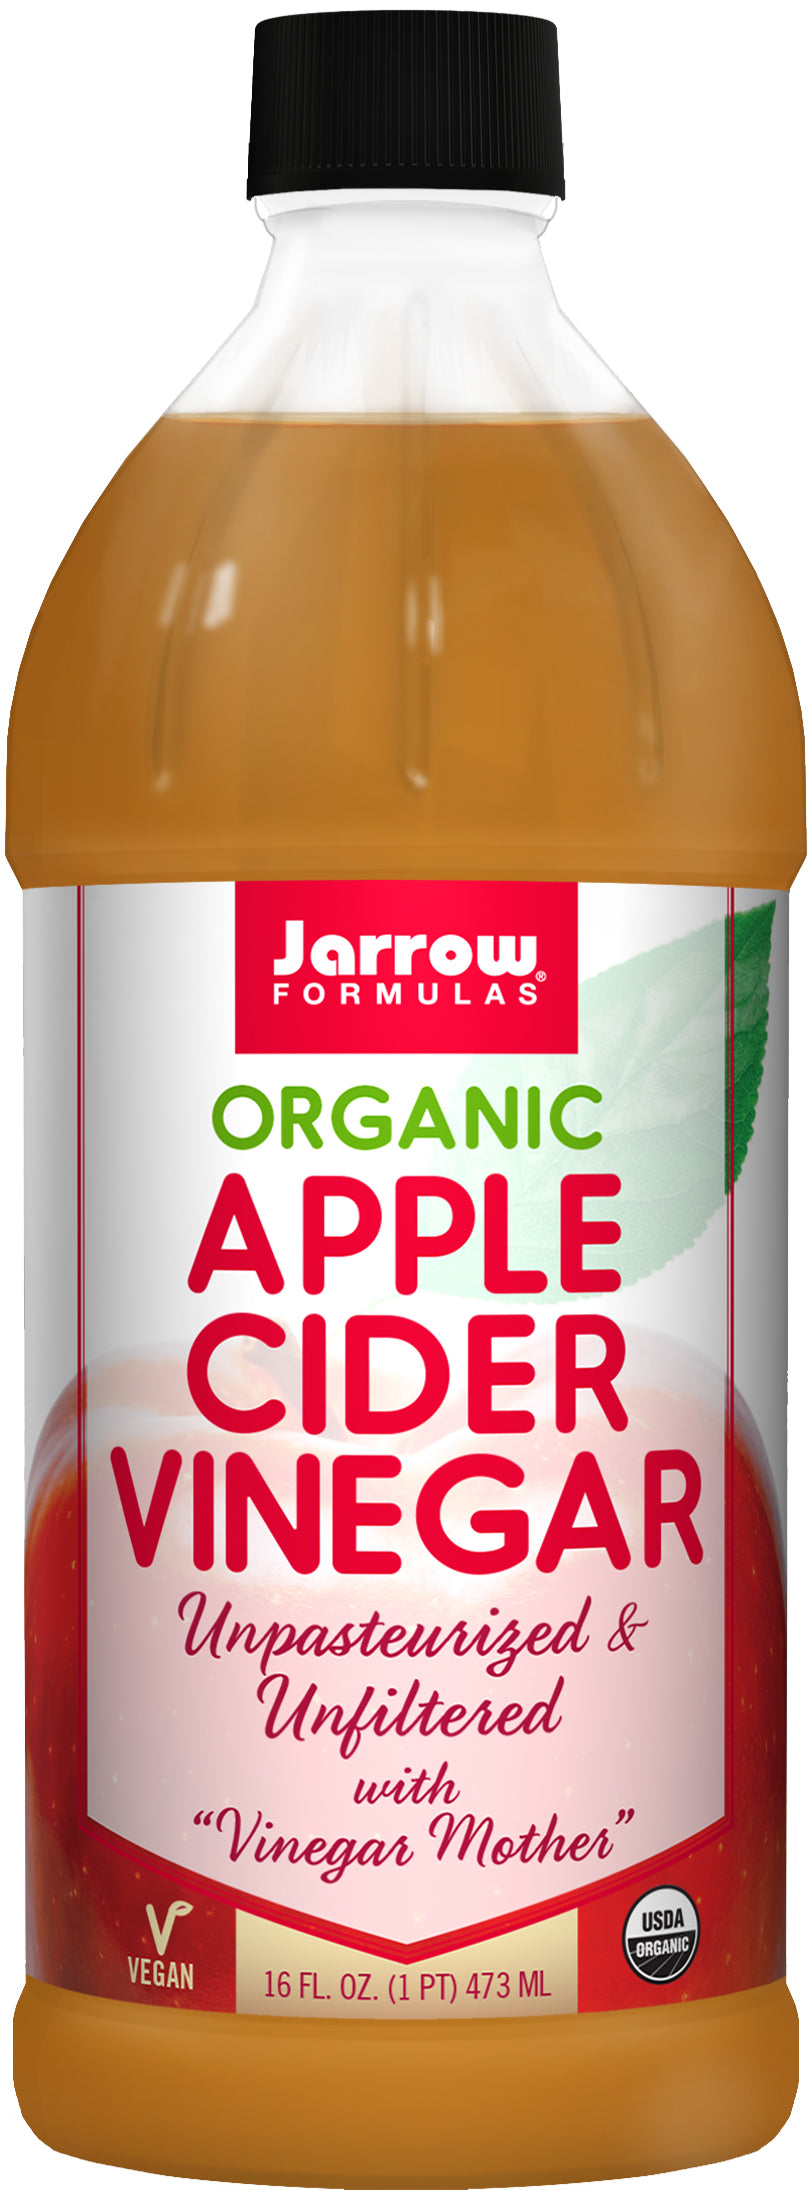 Jarrow Apple Cider Vinegar